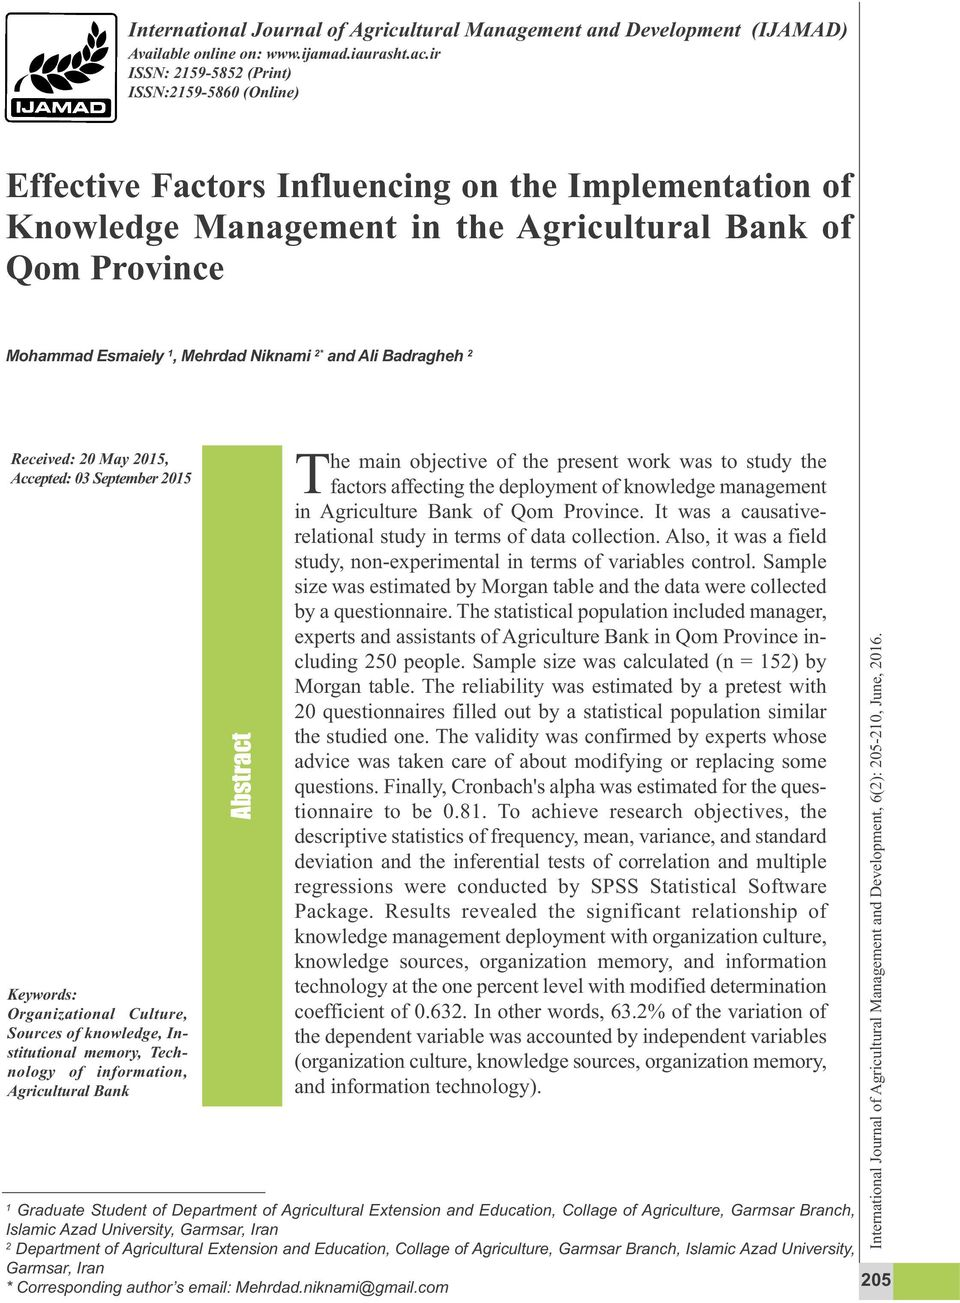 Niknami 2* and Ali Badragheh 2 Received: 20 May 2015, Accepted: 03 September 2015 Keywords: Organizational Culture, Sources of knowledge, Institutional memory, Technology of information, Agricultural